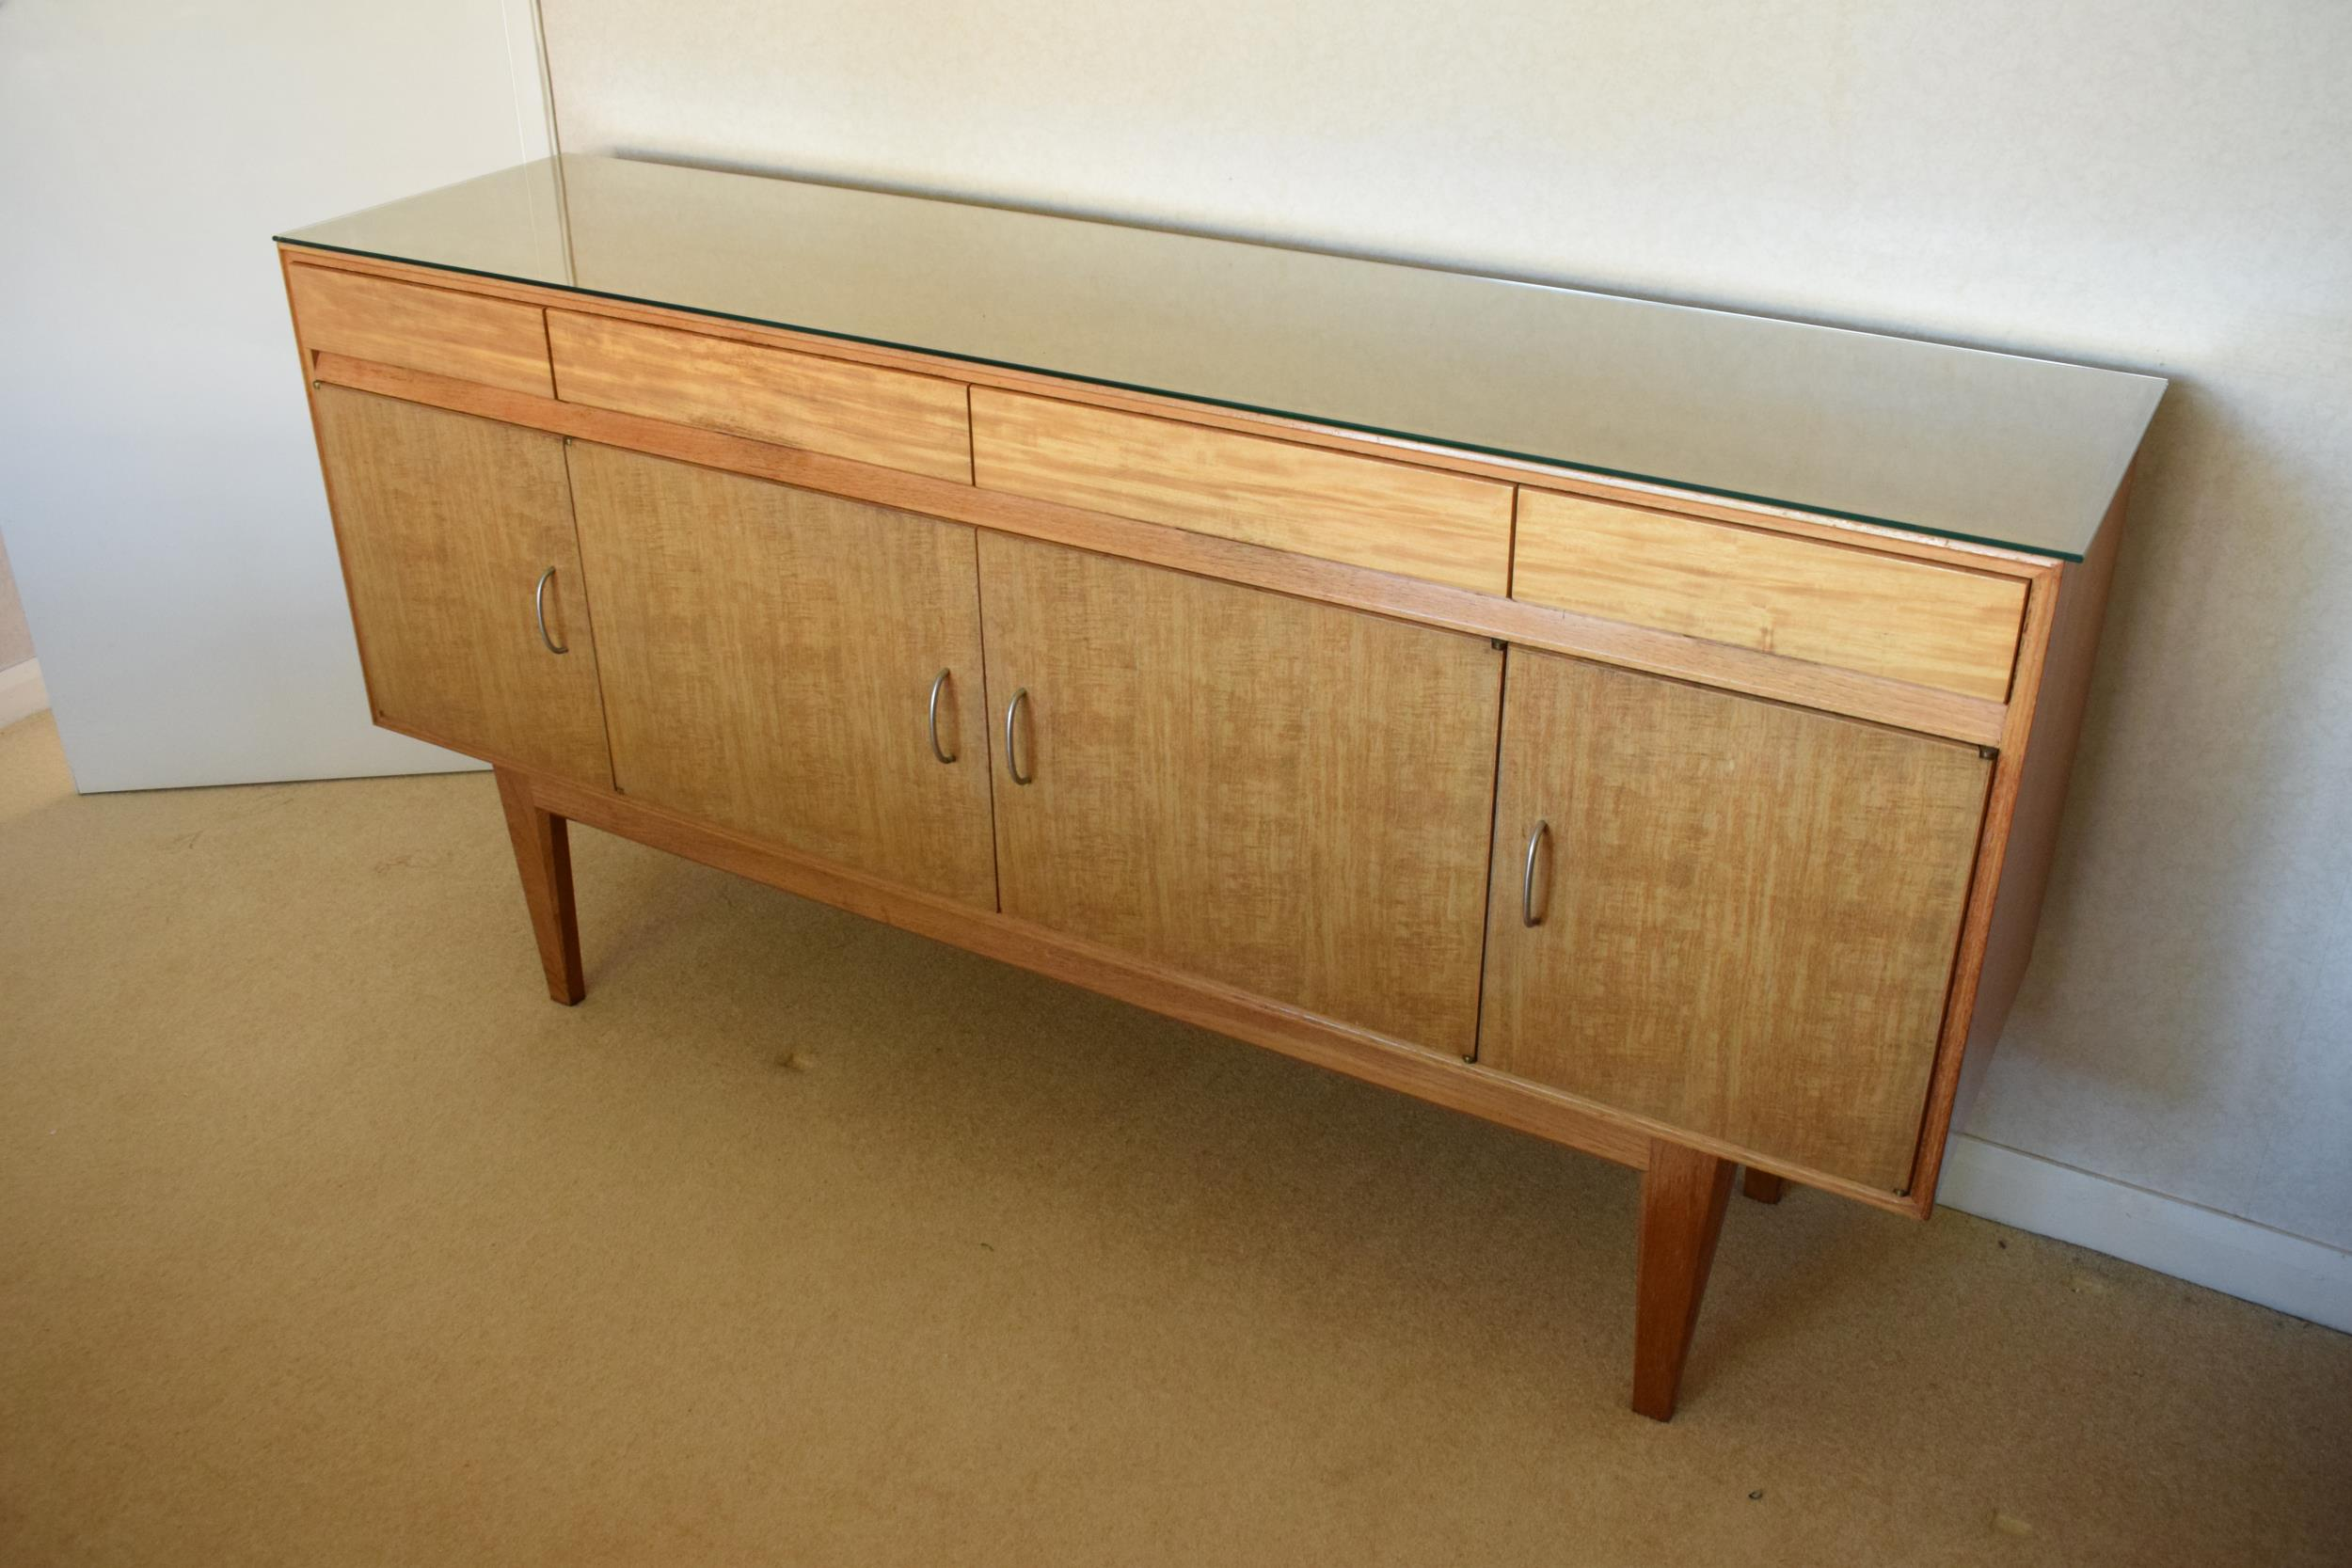 Gordon Rusell Limited four-door mid-century / retro sideboard on tapered legs with 4 drawers too. - Image 2 of 8